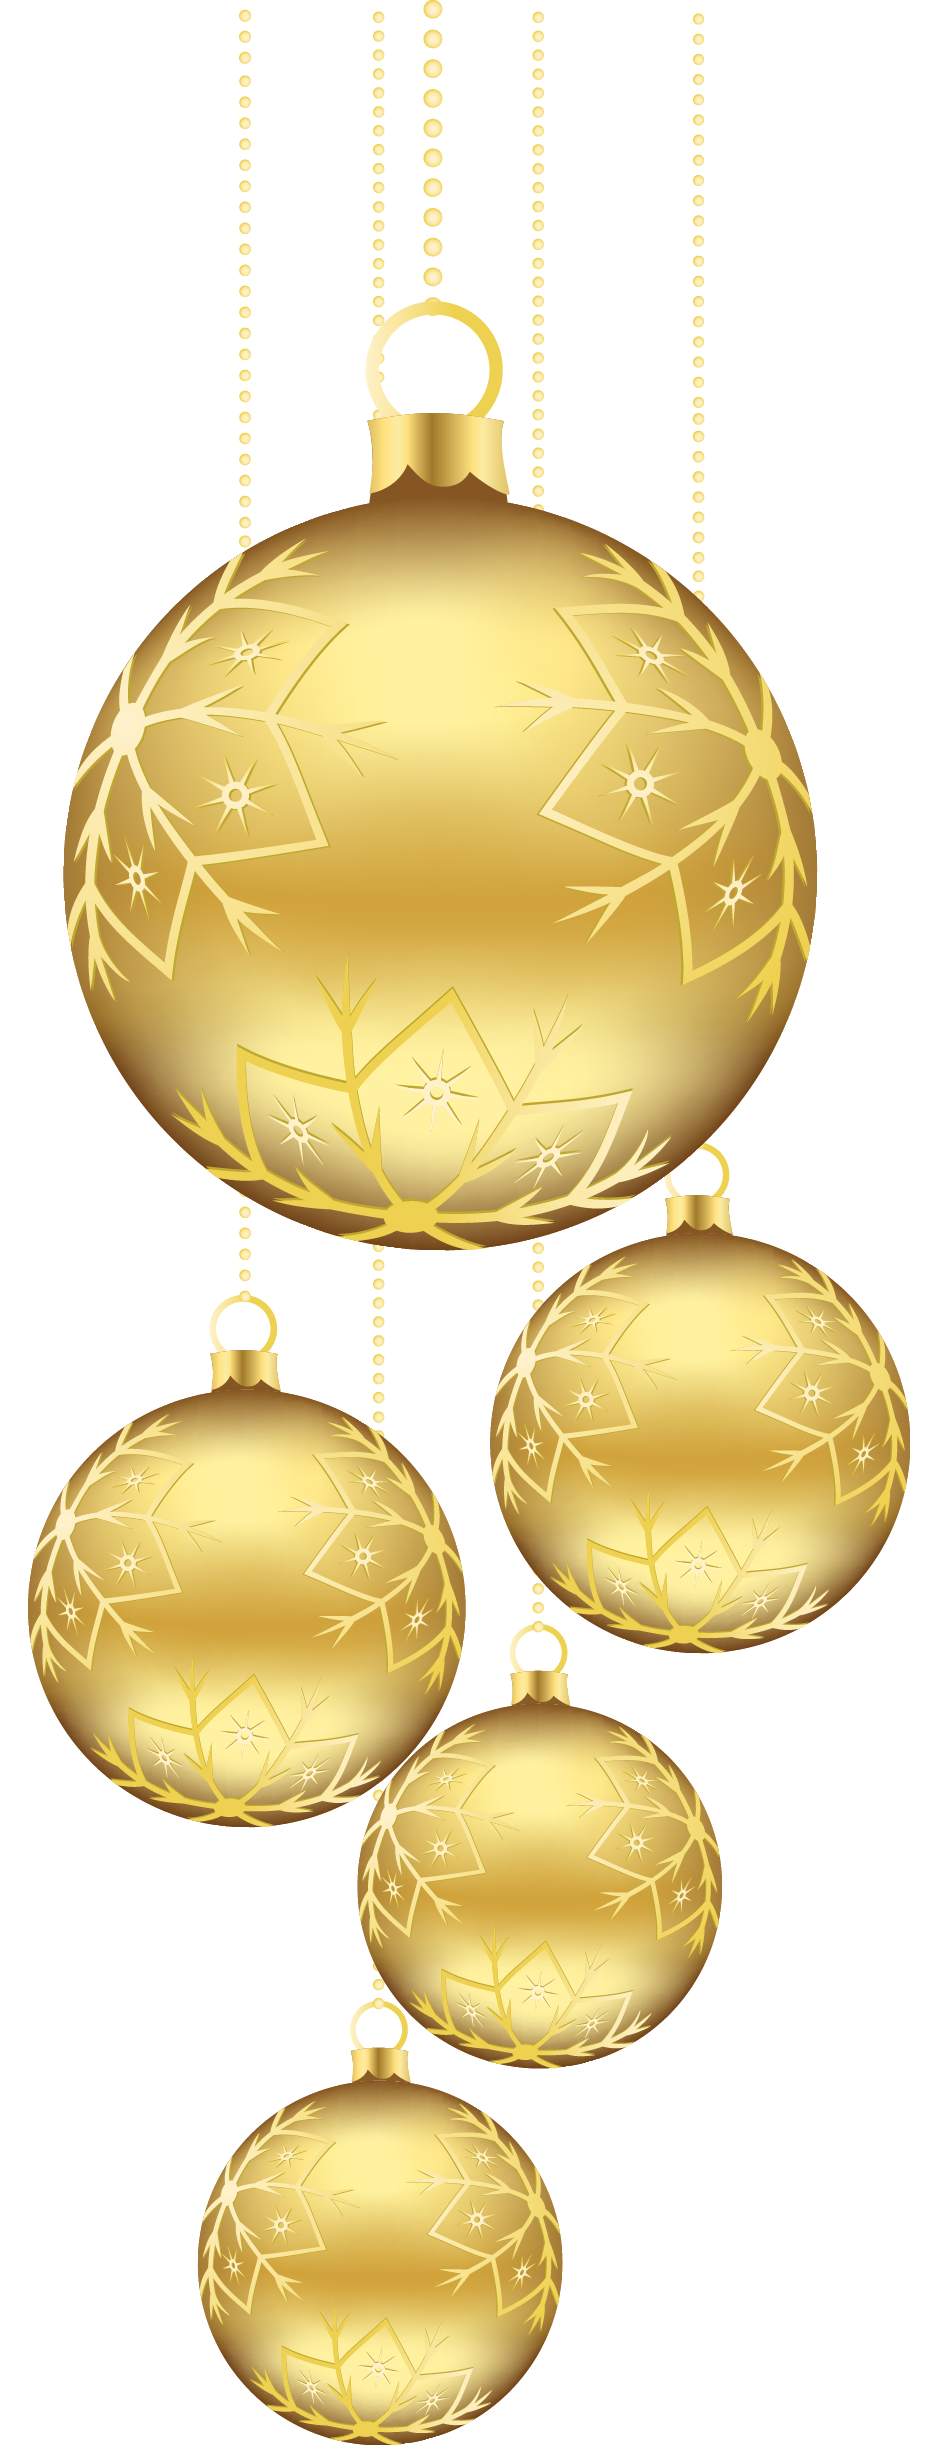 Gold christmas ornament clipart svg black and white Pin by France Rivard on image | Pinterest | Ornament, Clip art and Cards svg black and white